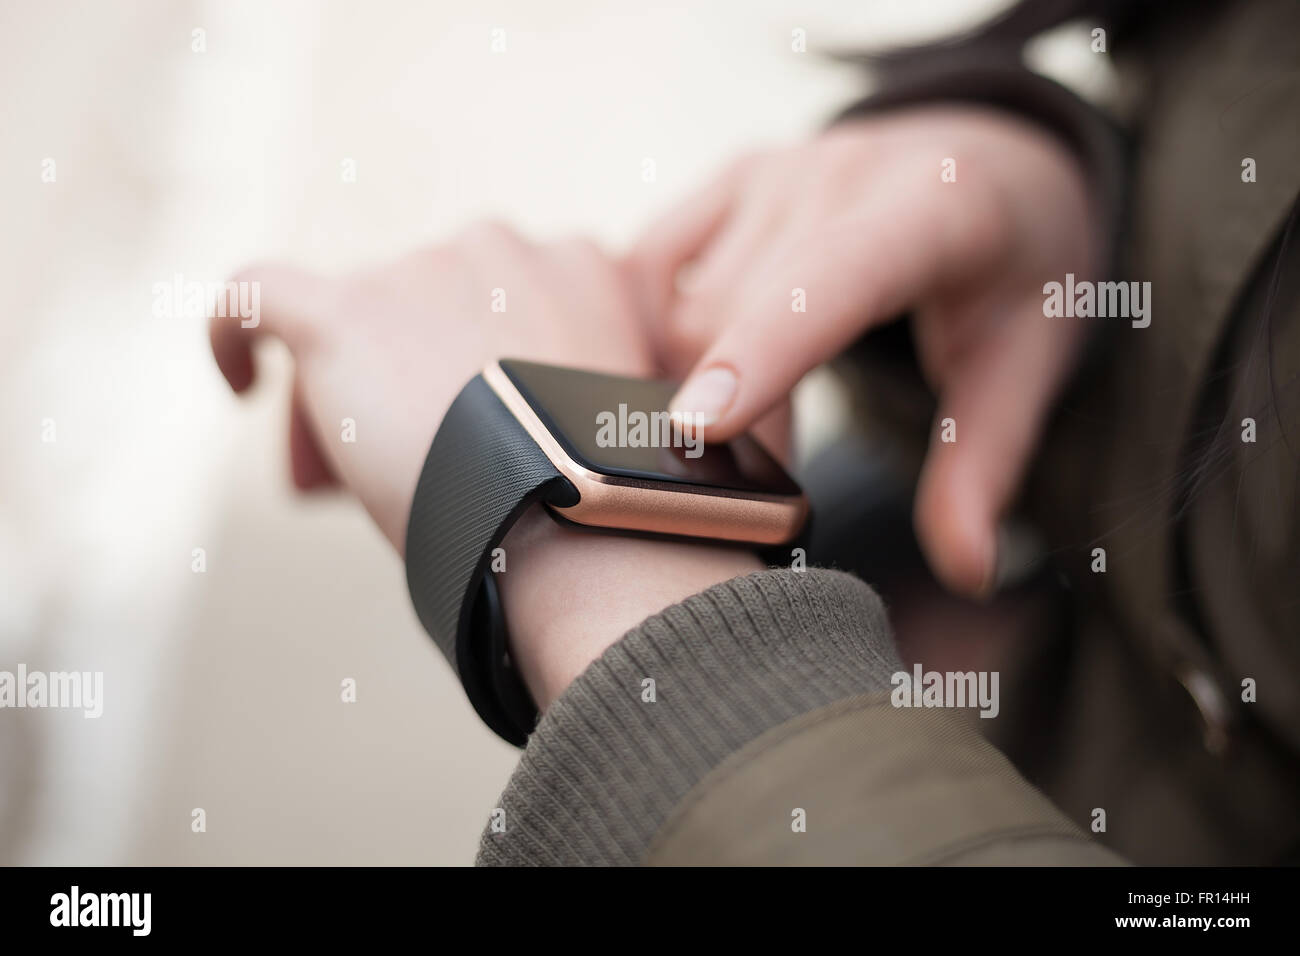 Hands of a female using her trendy smart wrist watch. This person is always connected to social media and internet. - Stock Image